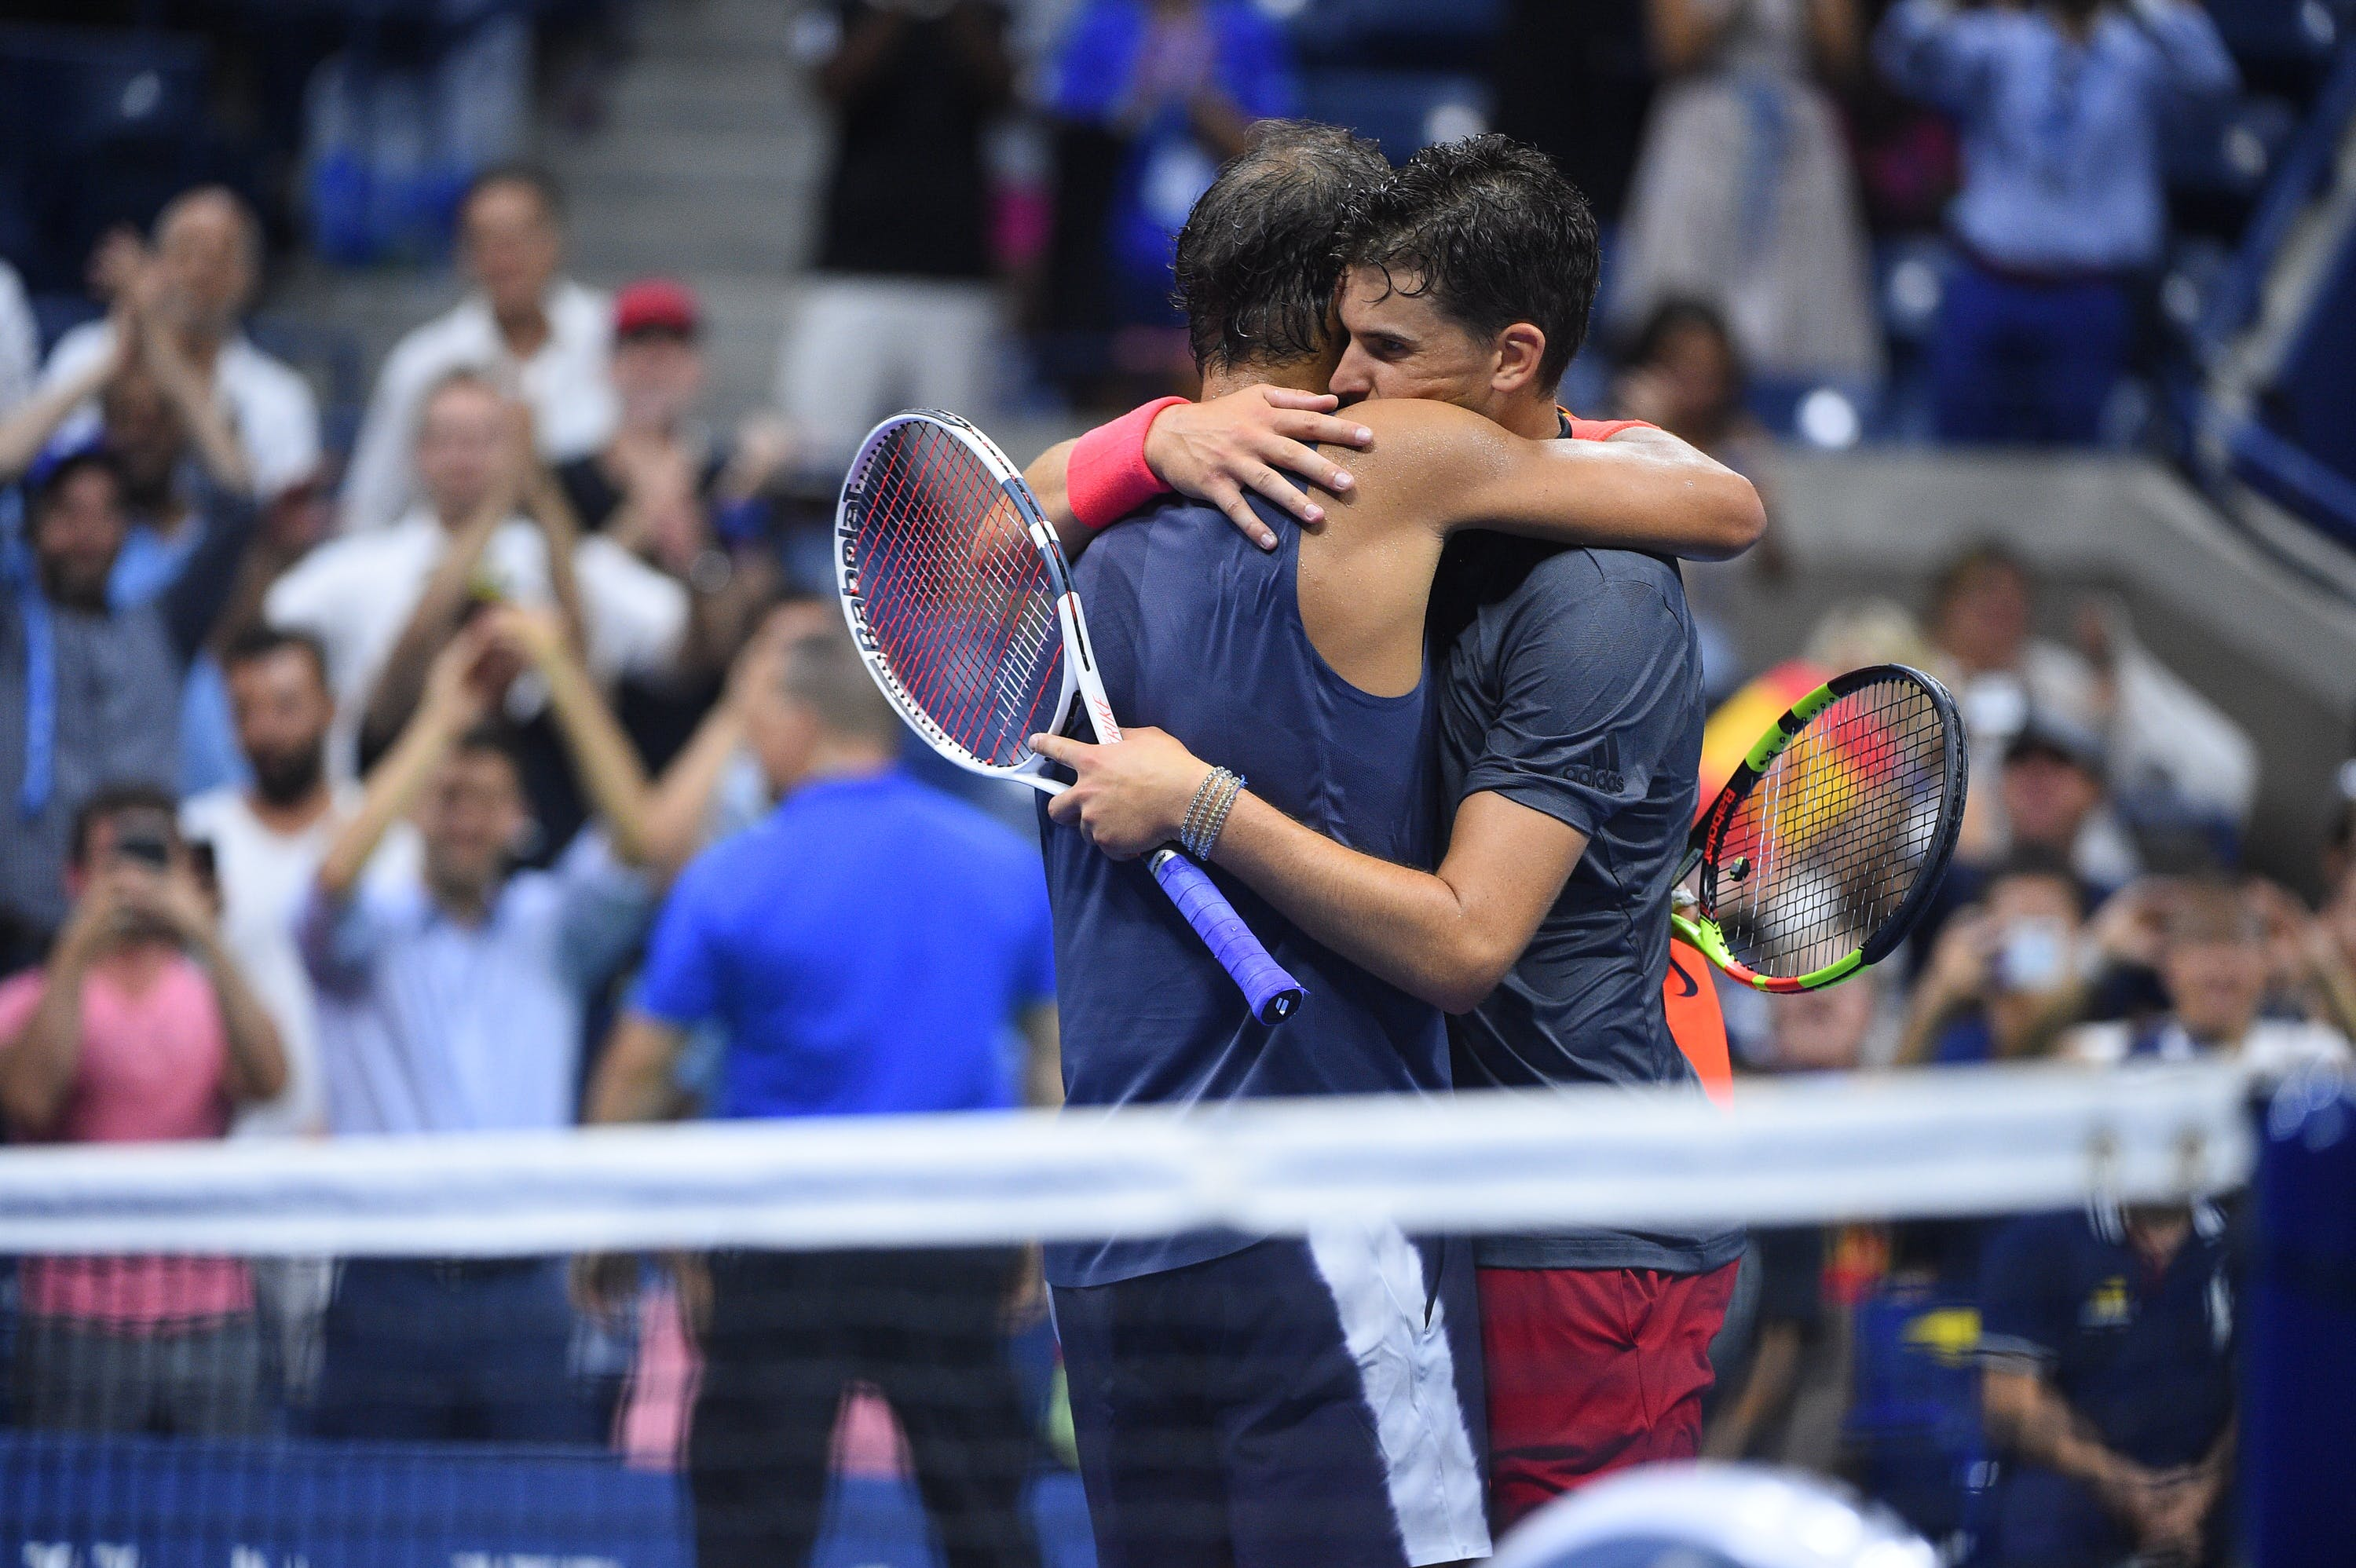 Rafael Nadal and Dominic Thiem hugging at the 2018 US Open